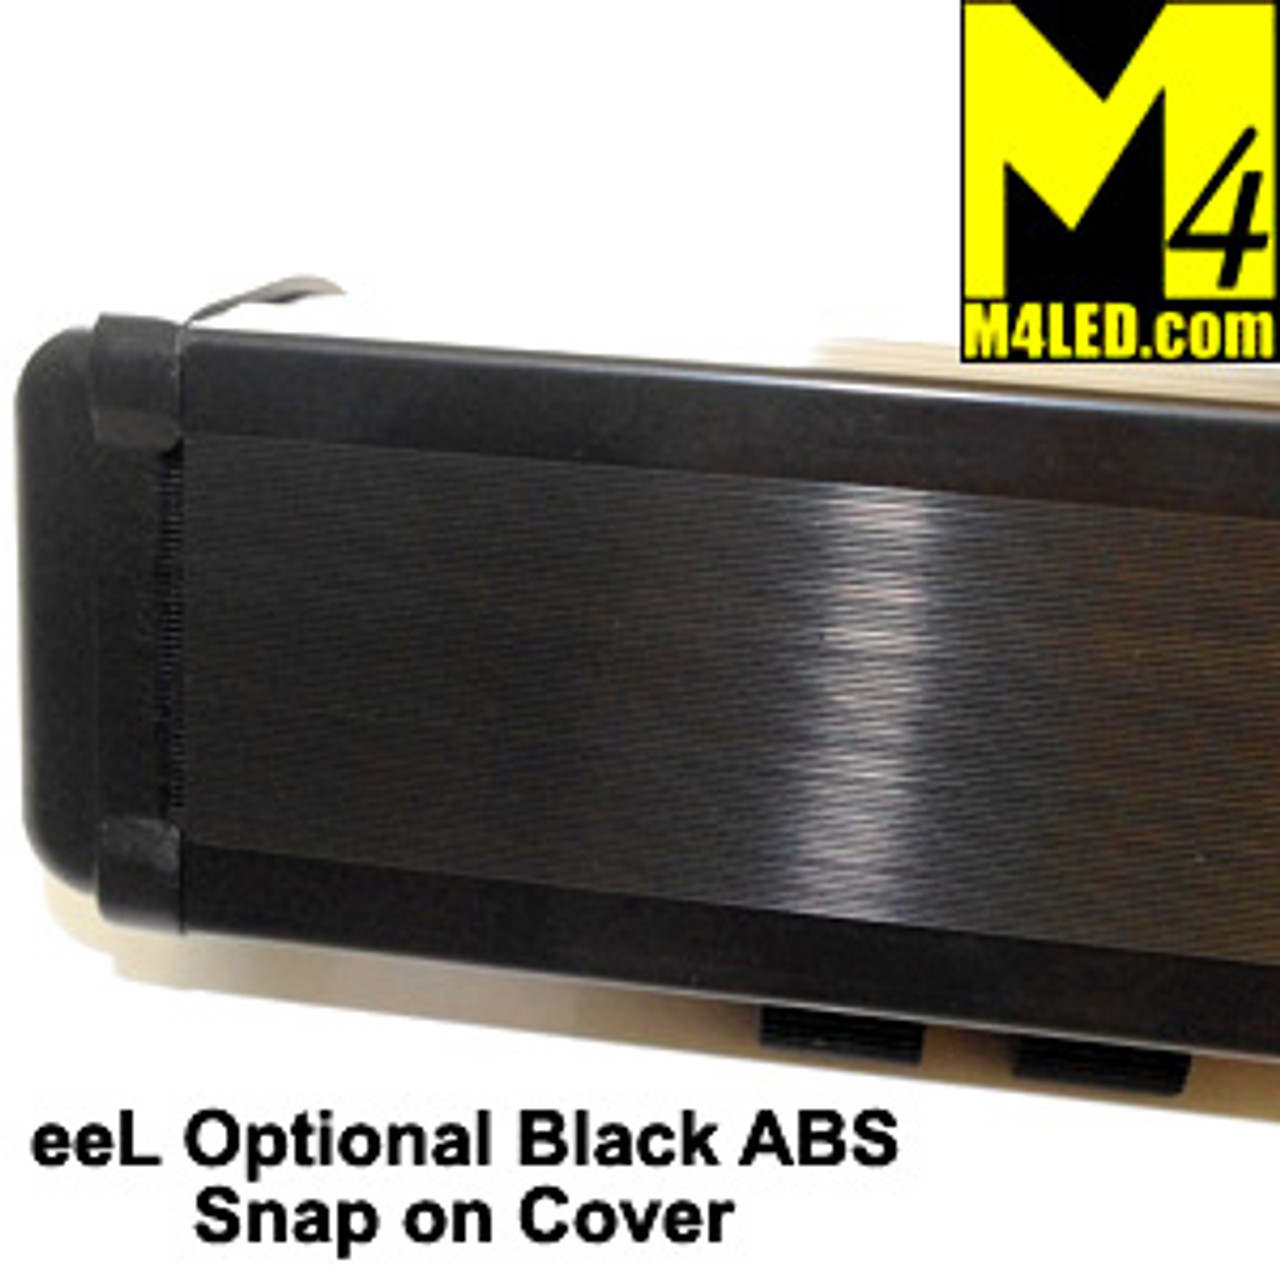 Black ABS Light Cover for M4 eeL120 Light Bars 20.875""